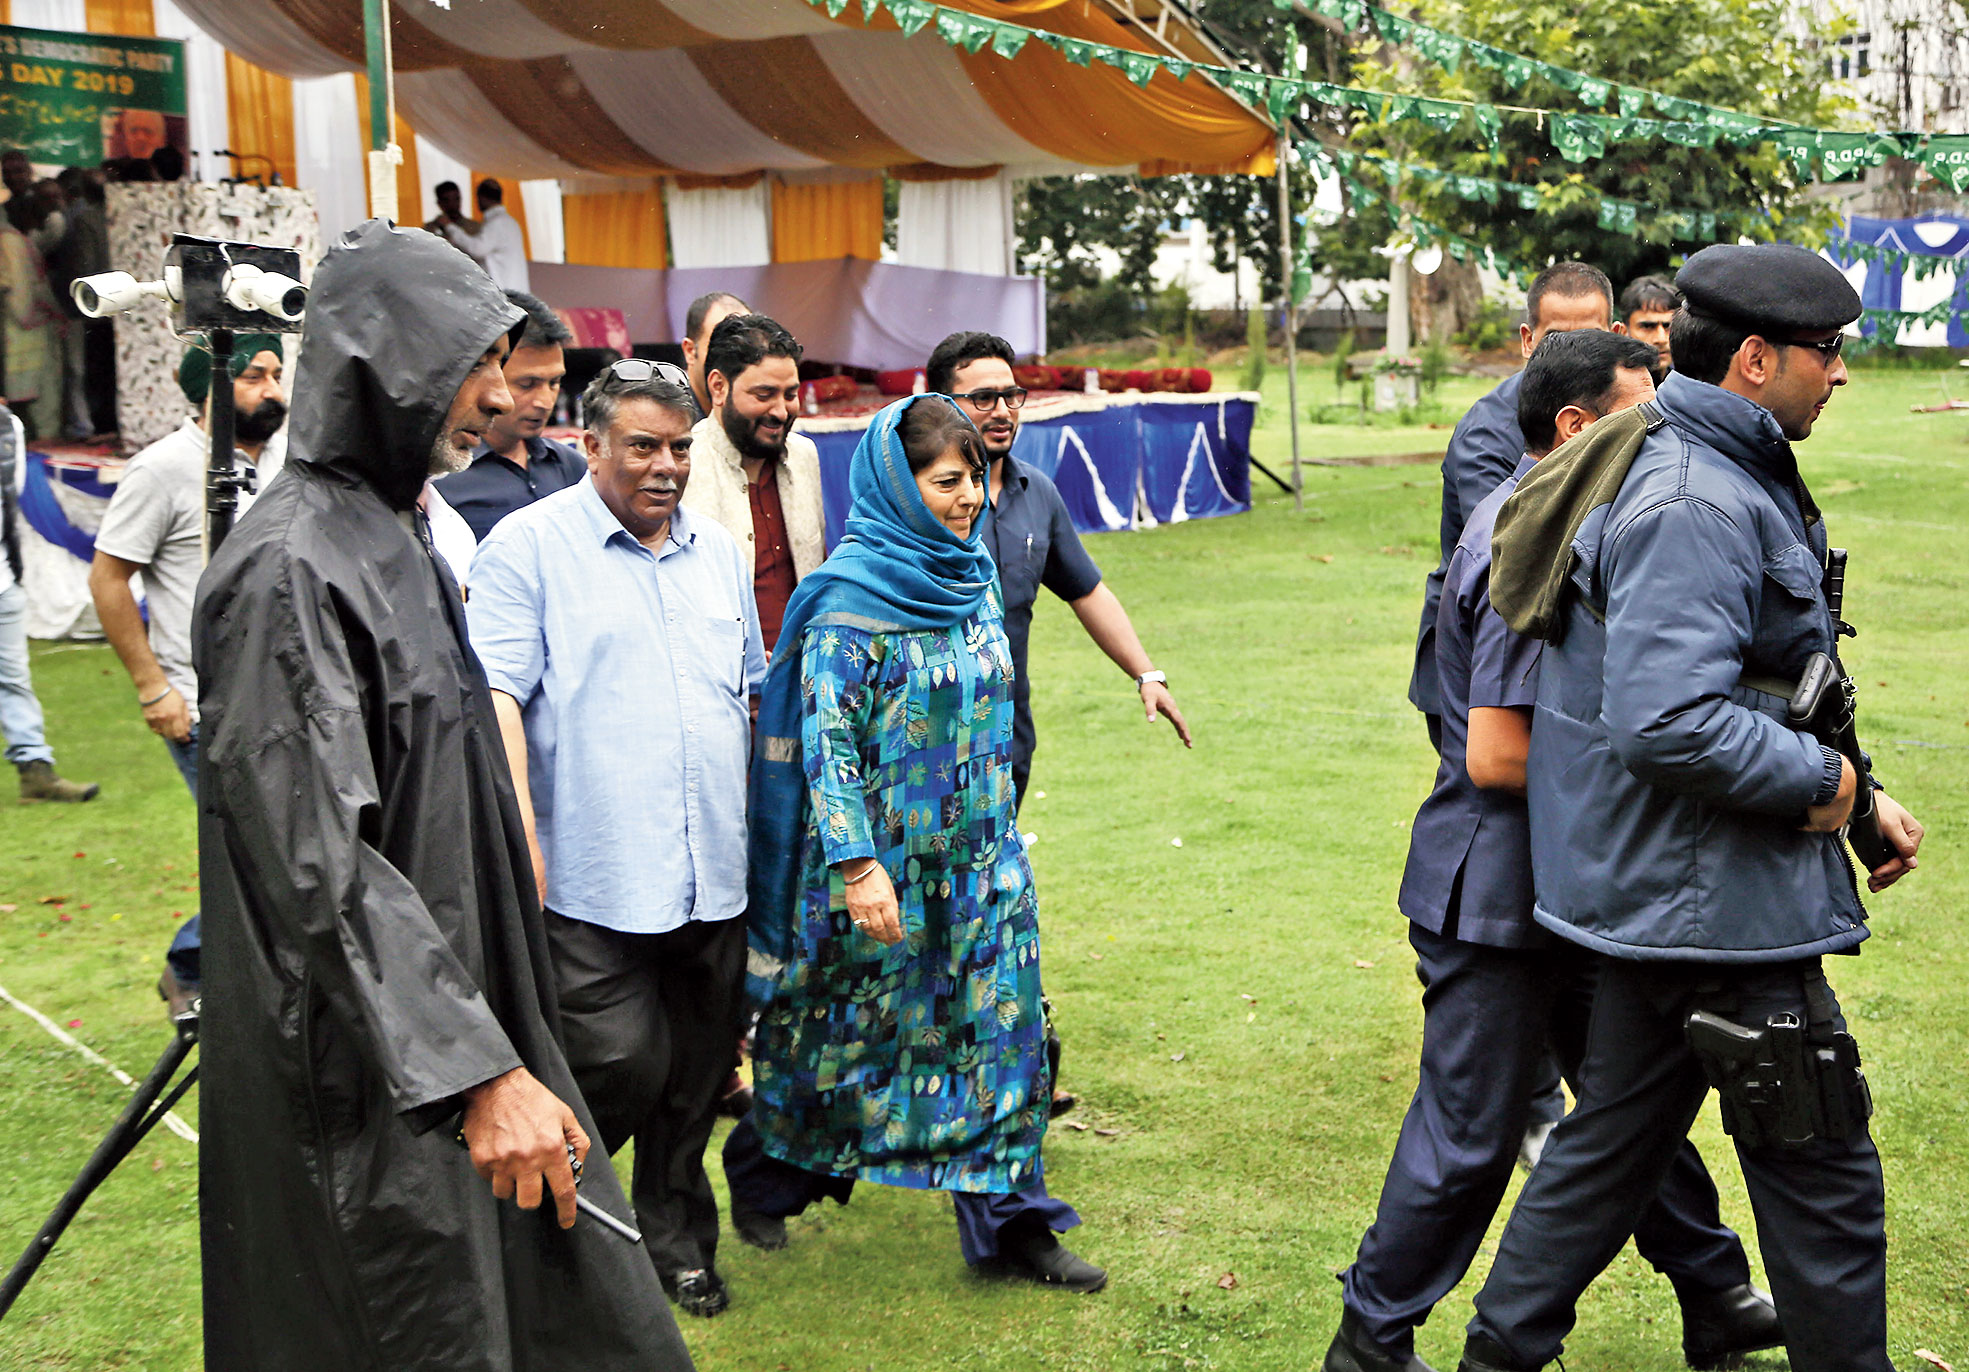 Mehbooba Mufti plea: Don't play with dynamite